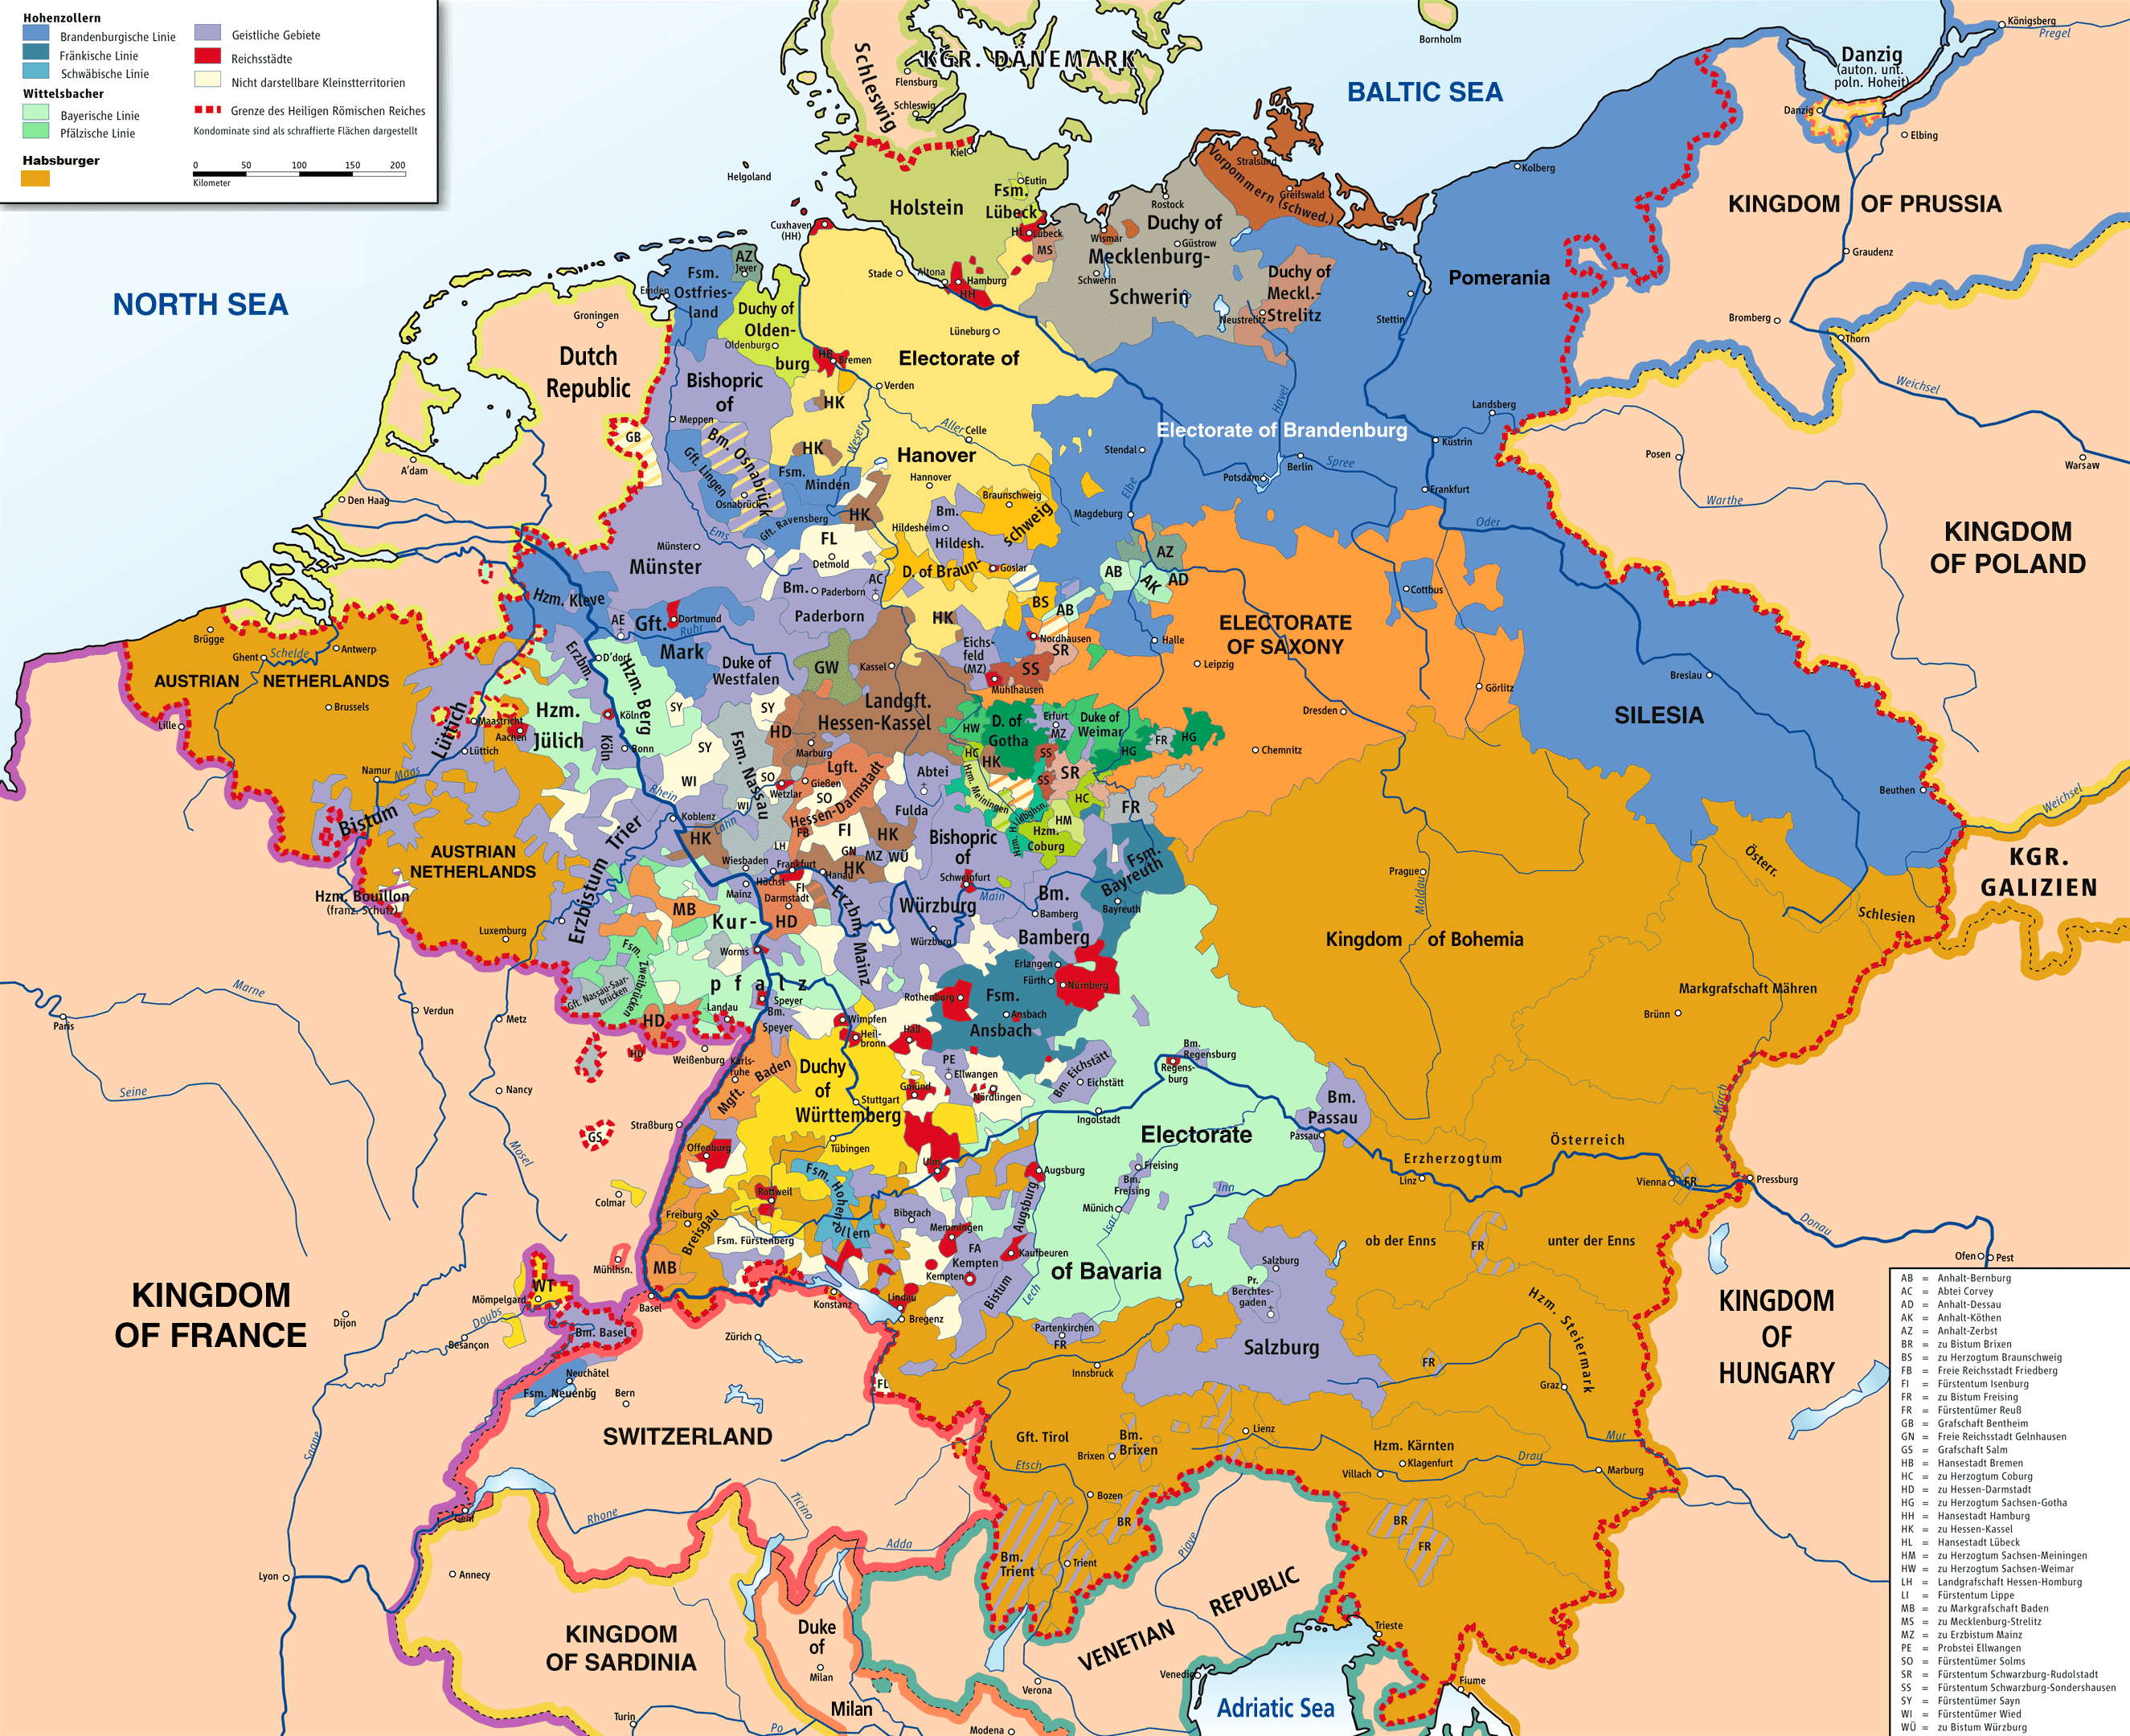 Holy Roman Empire Map File:Map of the Holy Roman Empire, 1789 en.png   Wikimedia Commons